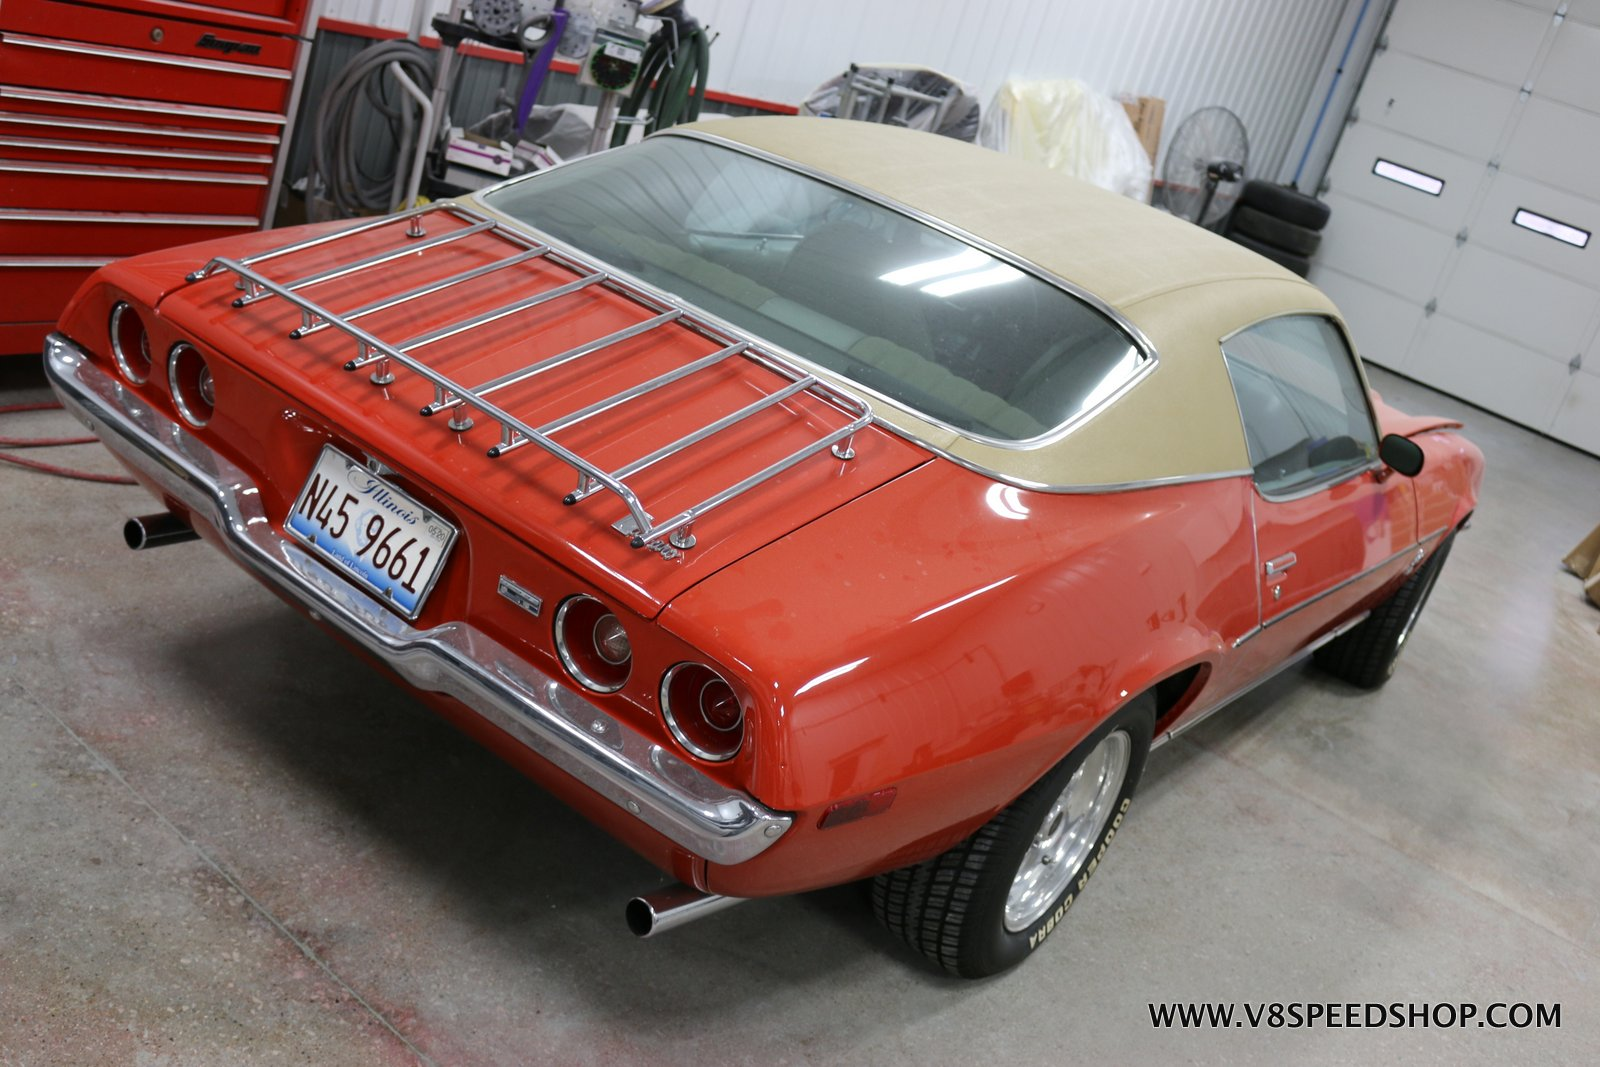 1973 Chevrolet Camaro Body and Paint Restoration at the V8 Speed and Resto Shop